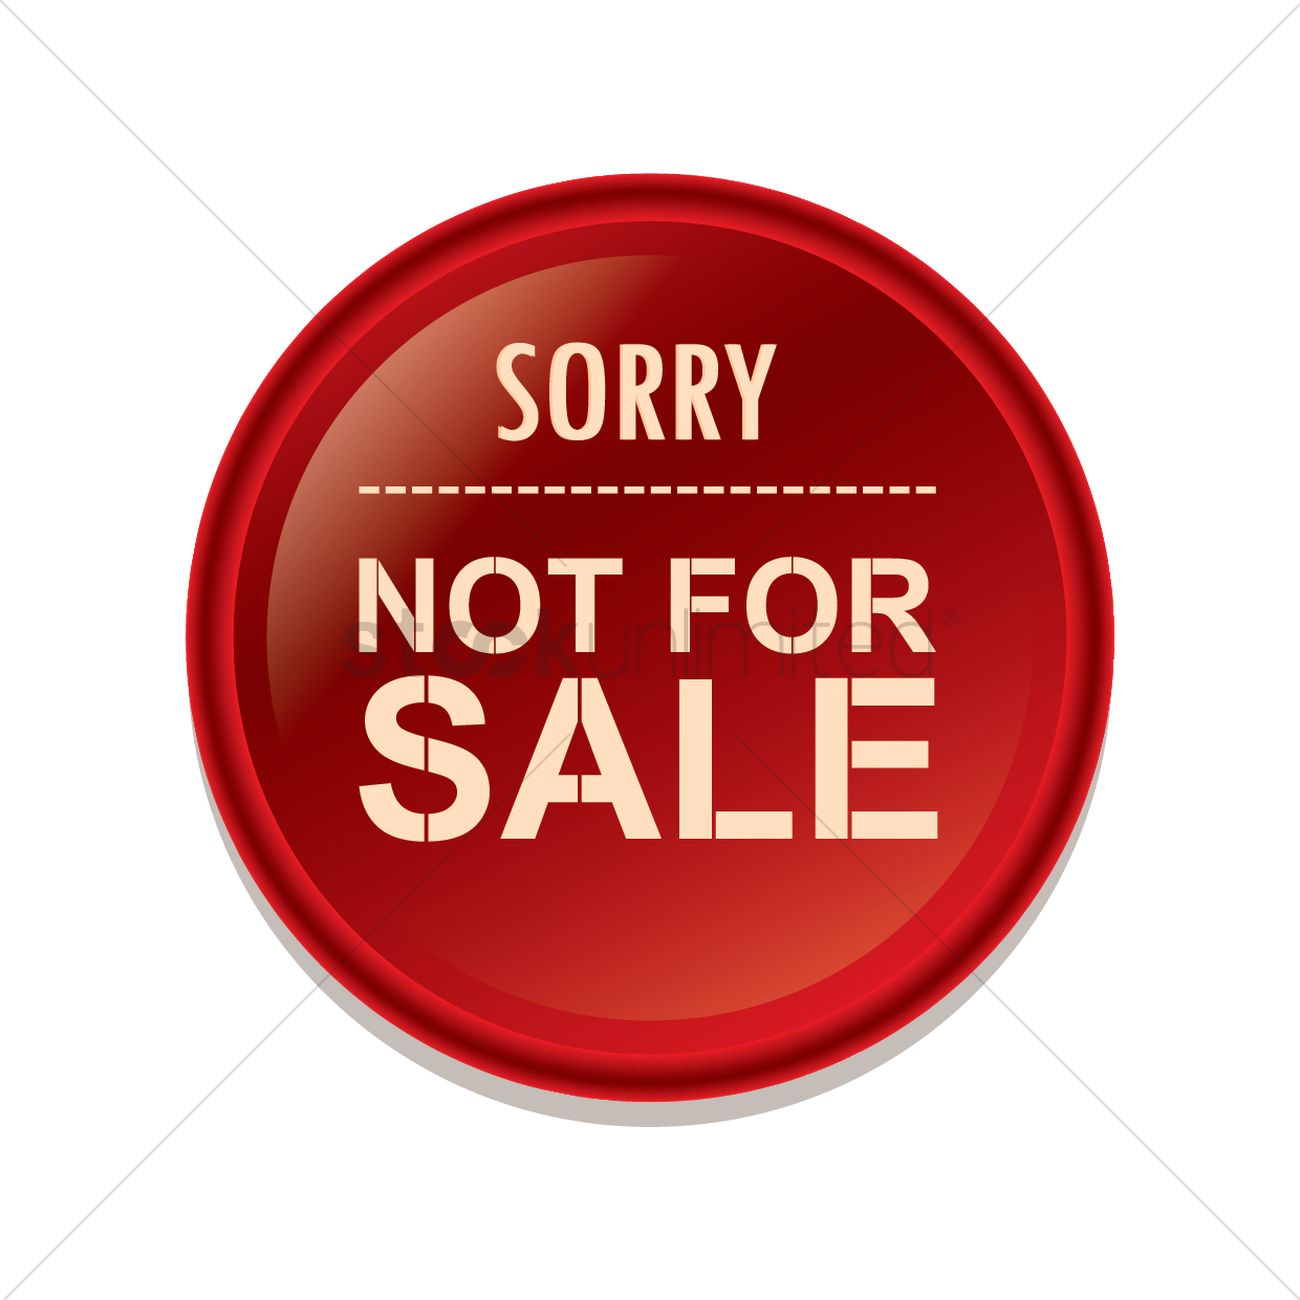 Not For Sale >> Sorry Not For Sale Label Vector Image 1490952 Stockunlimited